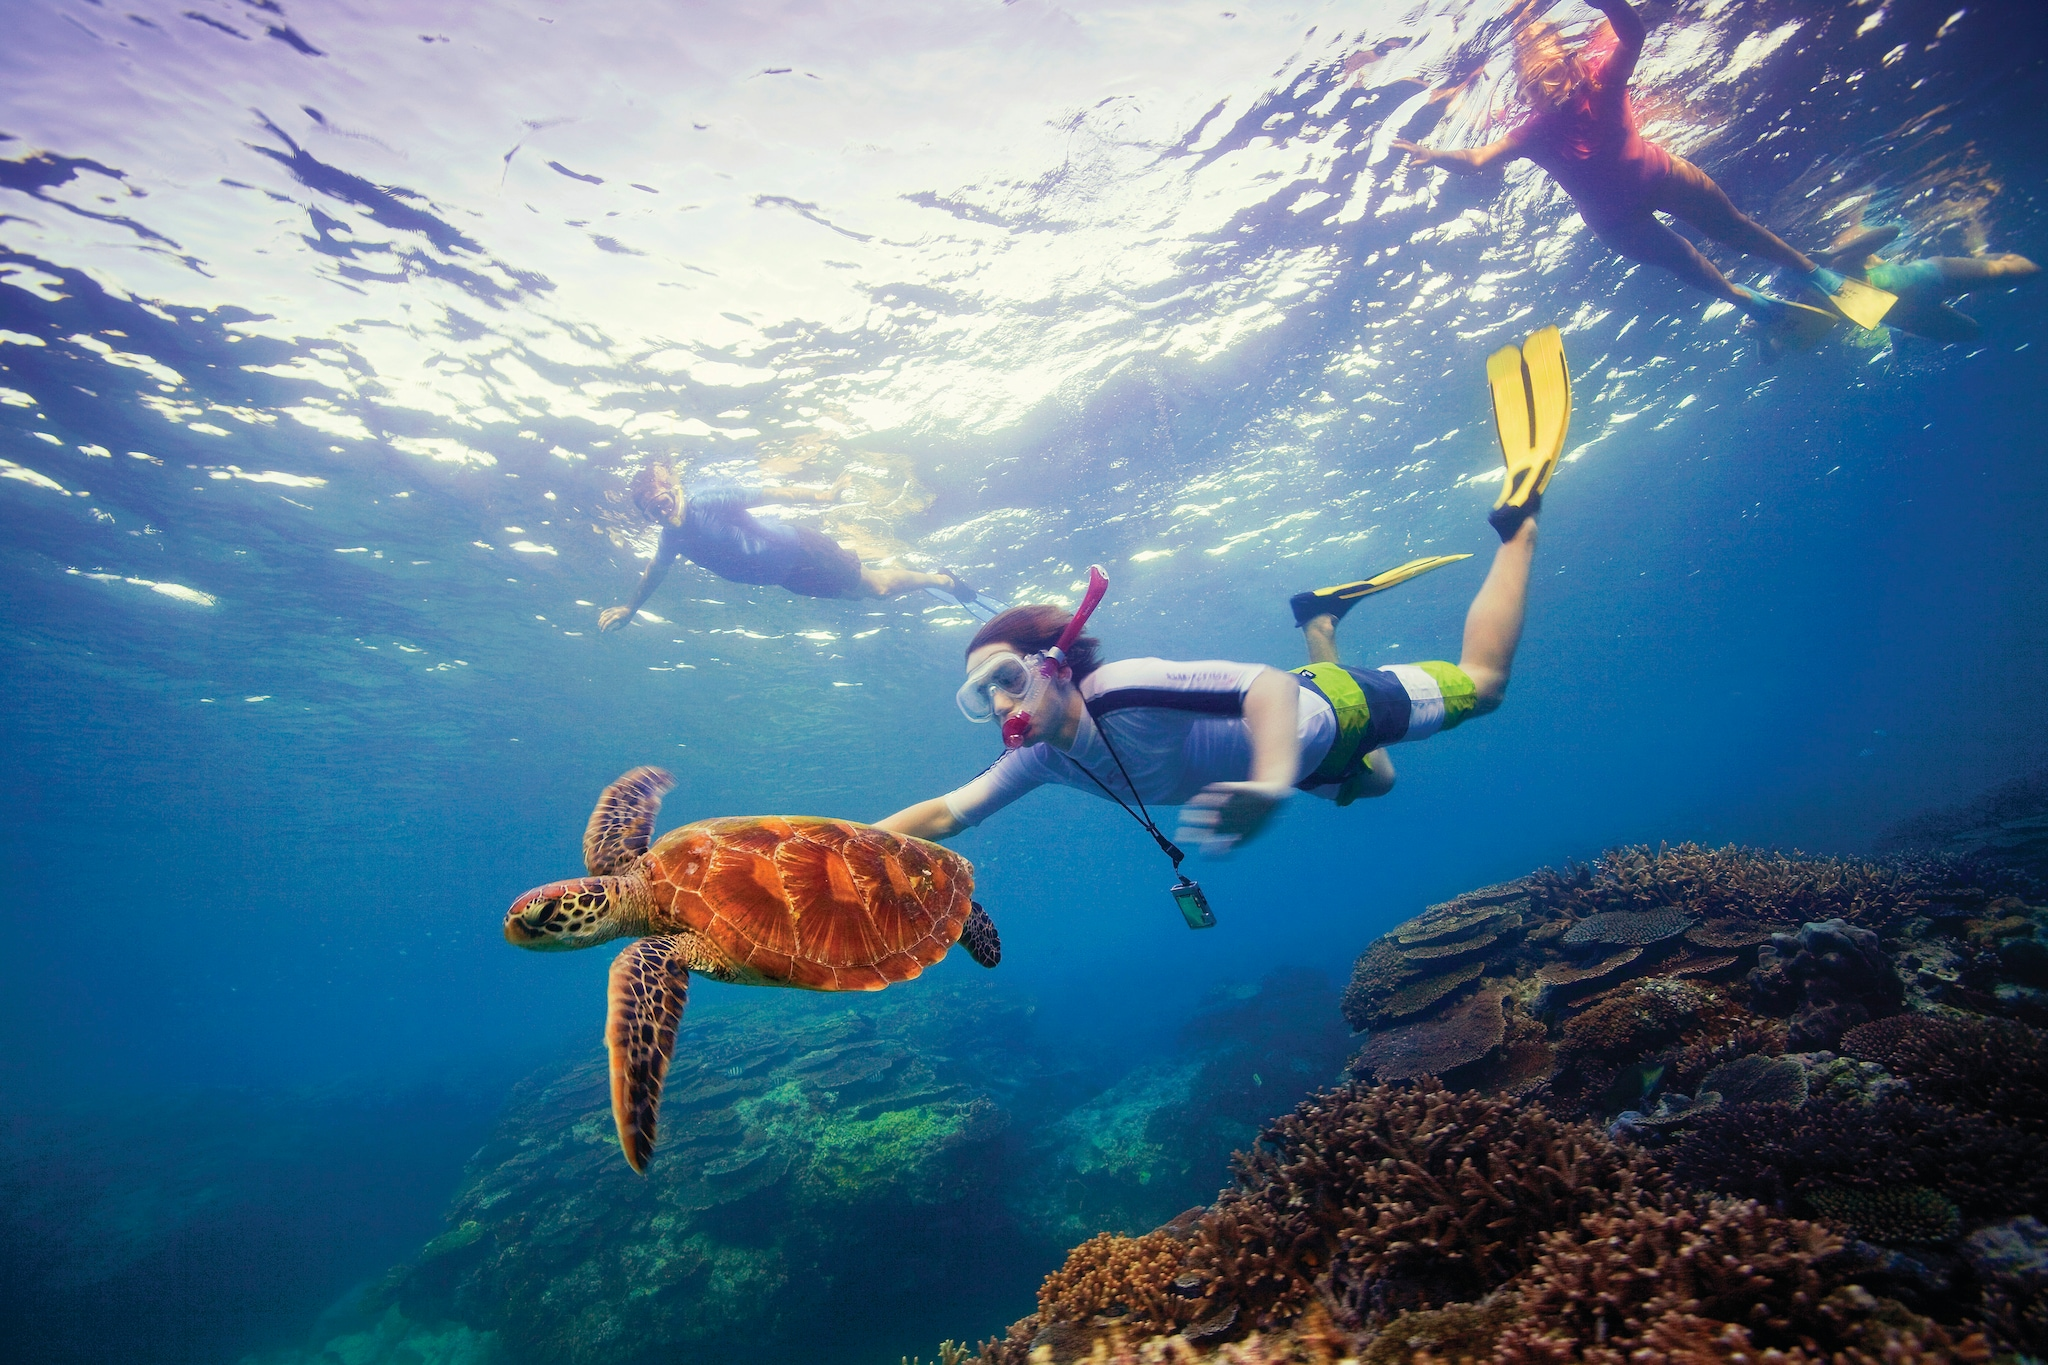 Snorkelling, Great Barrier Reef, QLD, Mandatory credit: Tourism Australia, Photographer: Darren Jew.